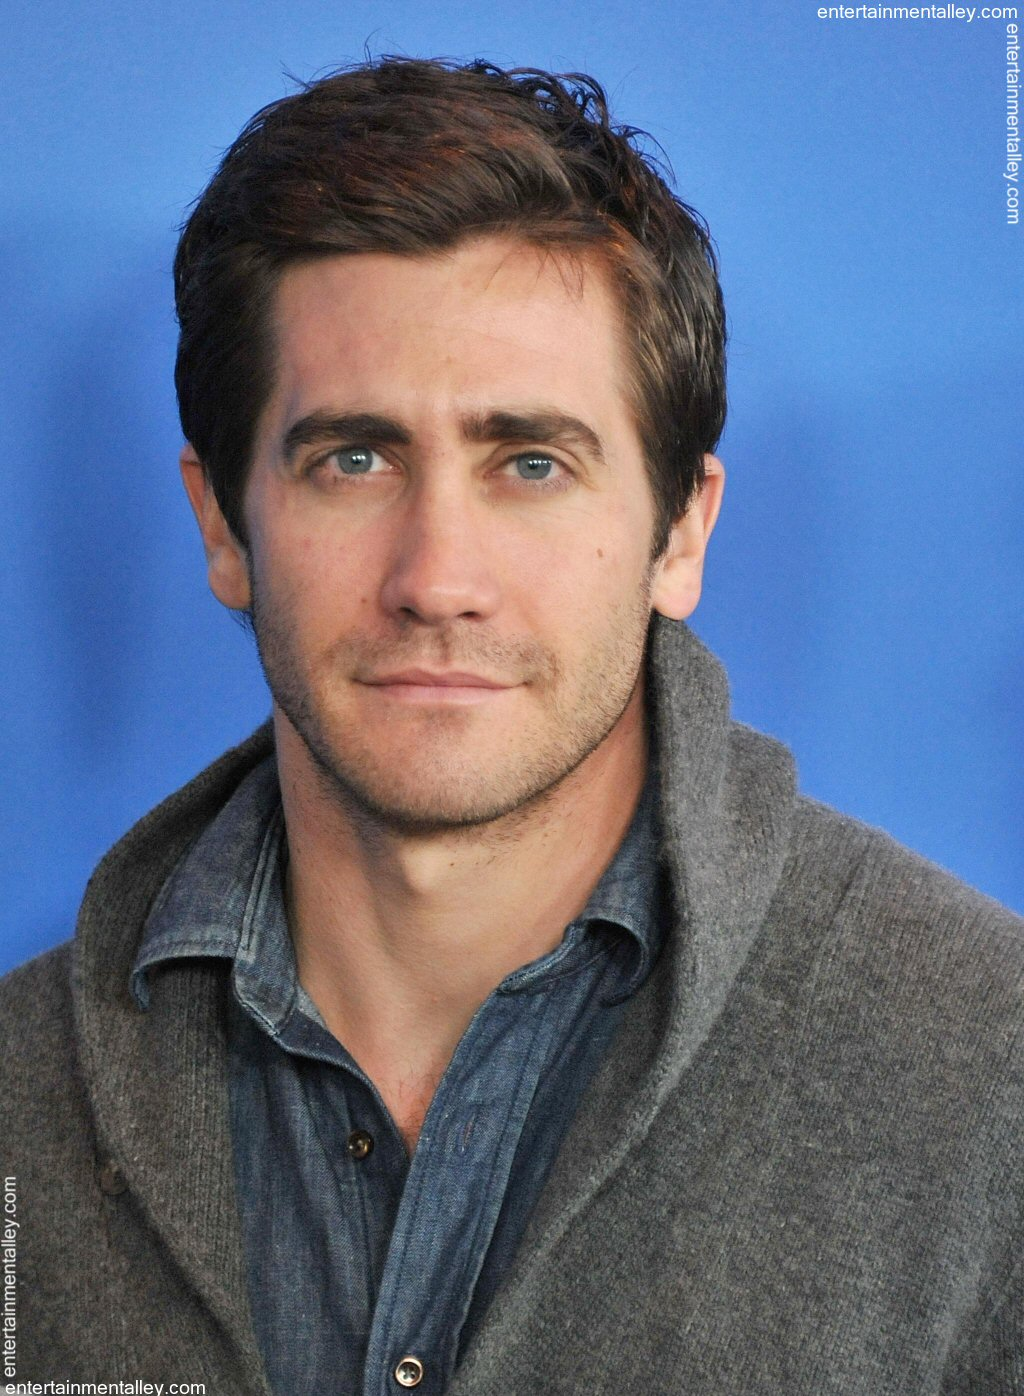 Actor Name Jake Gyllenhaal Main Character Detective Sent To Fundraiser